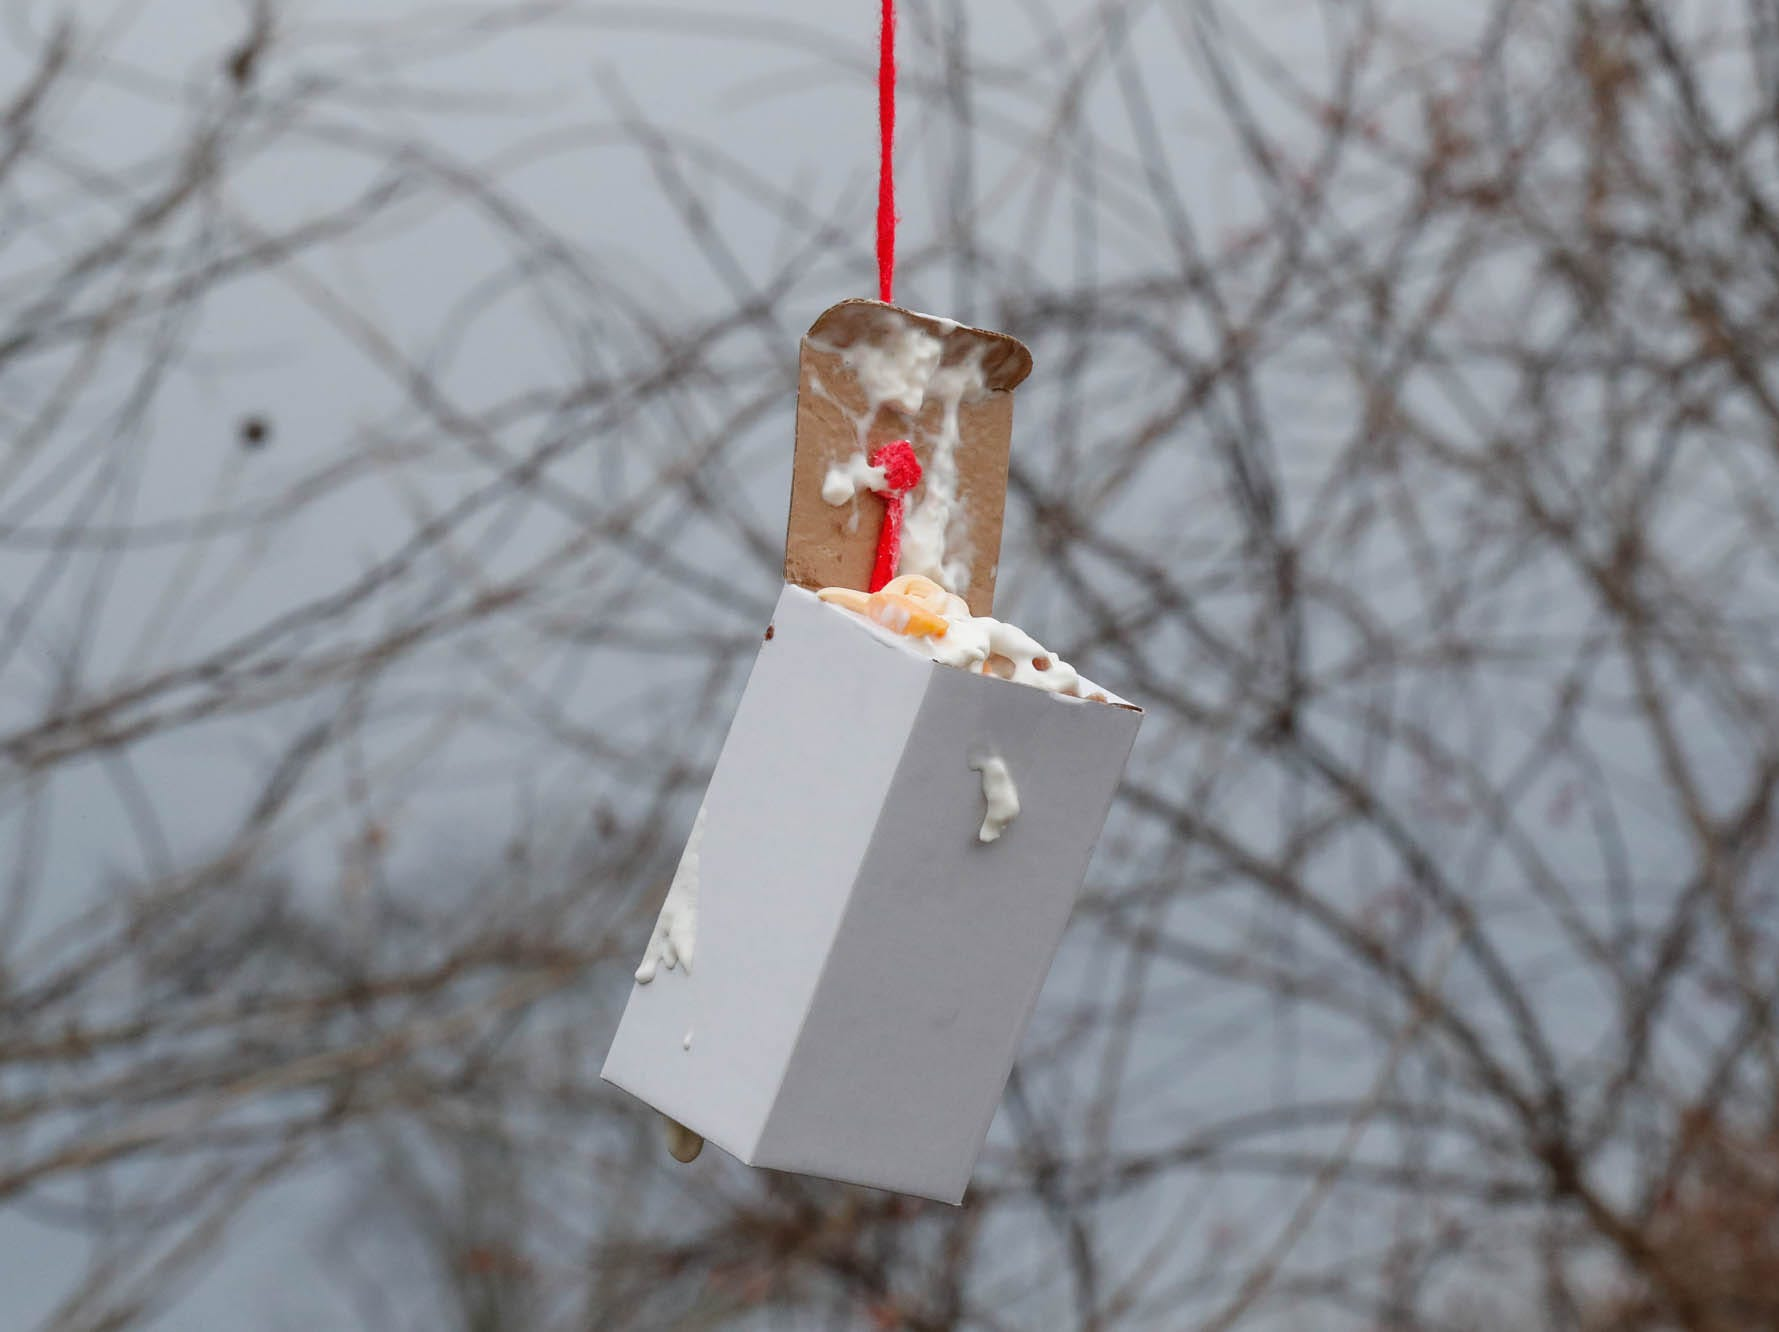 Tasty treats are hung on trees and placed throughout the wolf enclosure at Wolf Park during Santa's annual visit in Battle Ground Indiana on Saturday, Dec. 15, 2018.